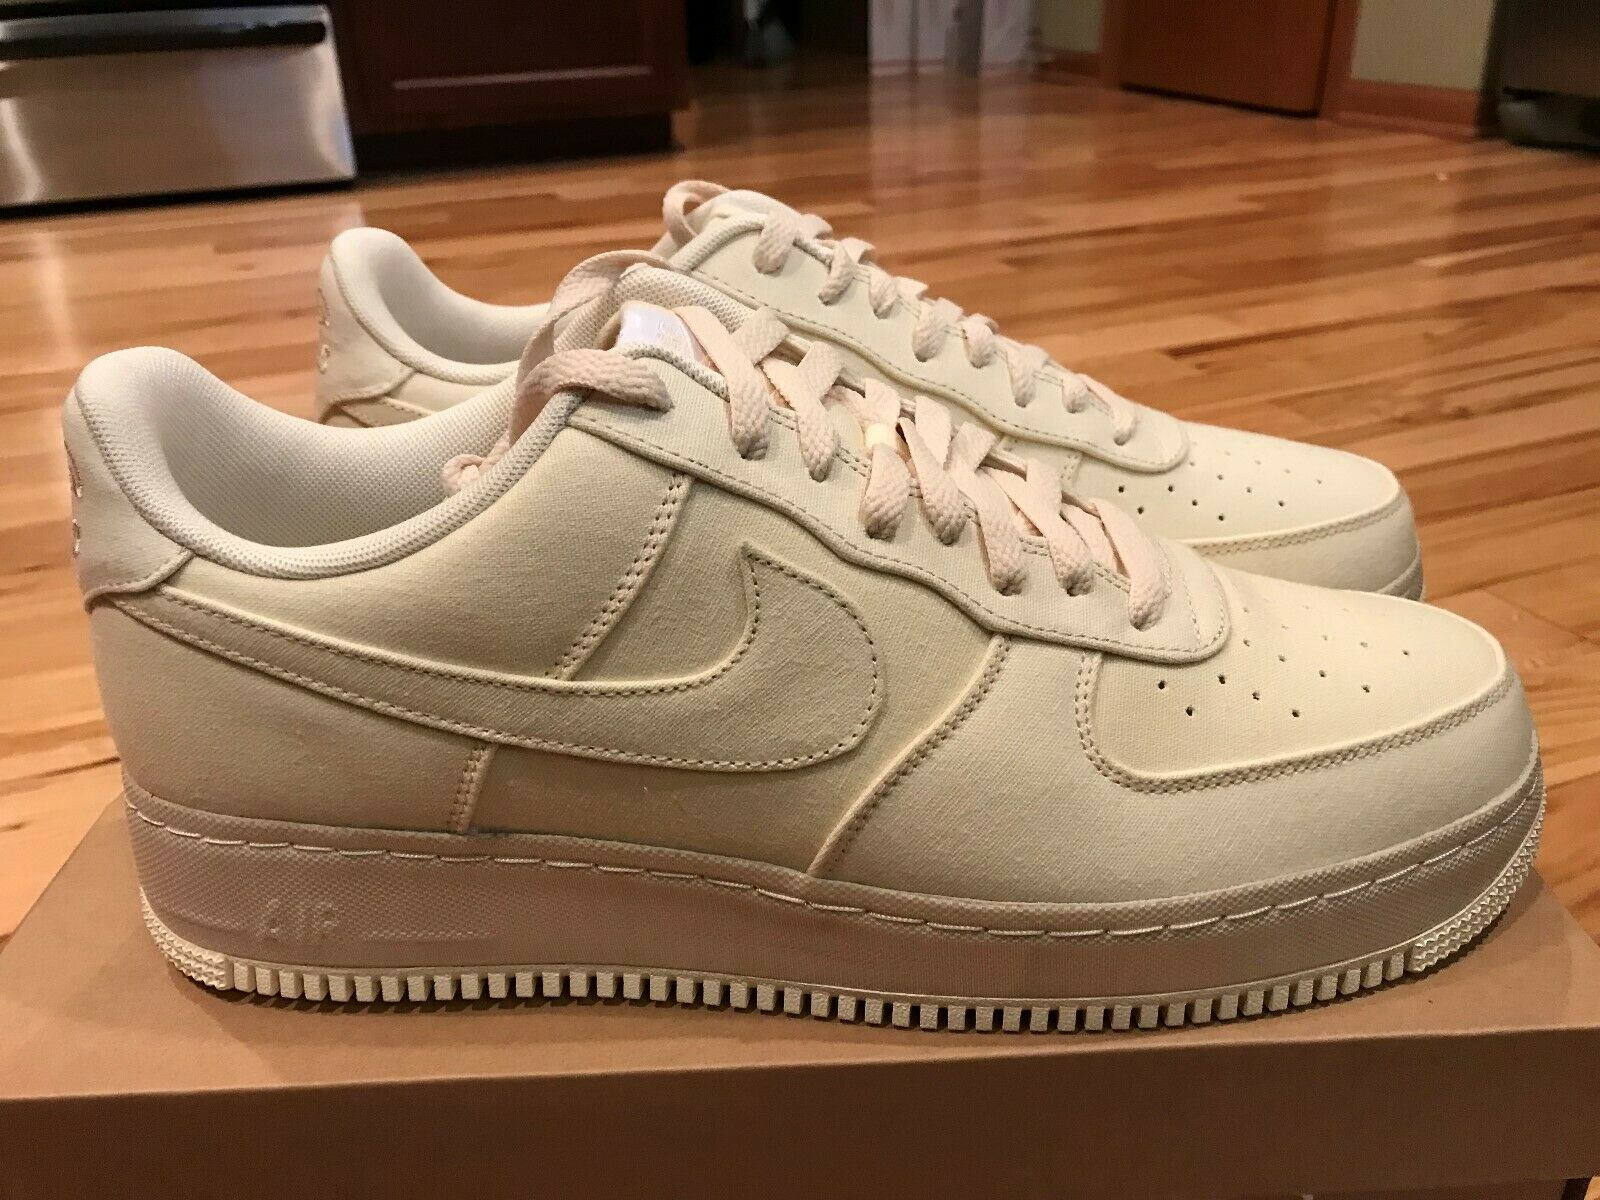 Nike Air Force 1 07 LV8 NYC Procell Canvas Muslin Desert Ore CJ0691 100 SIze 13